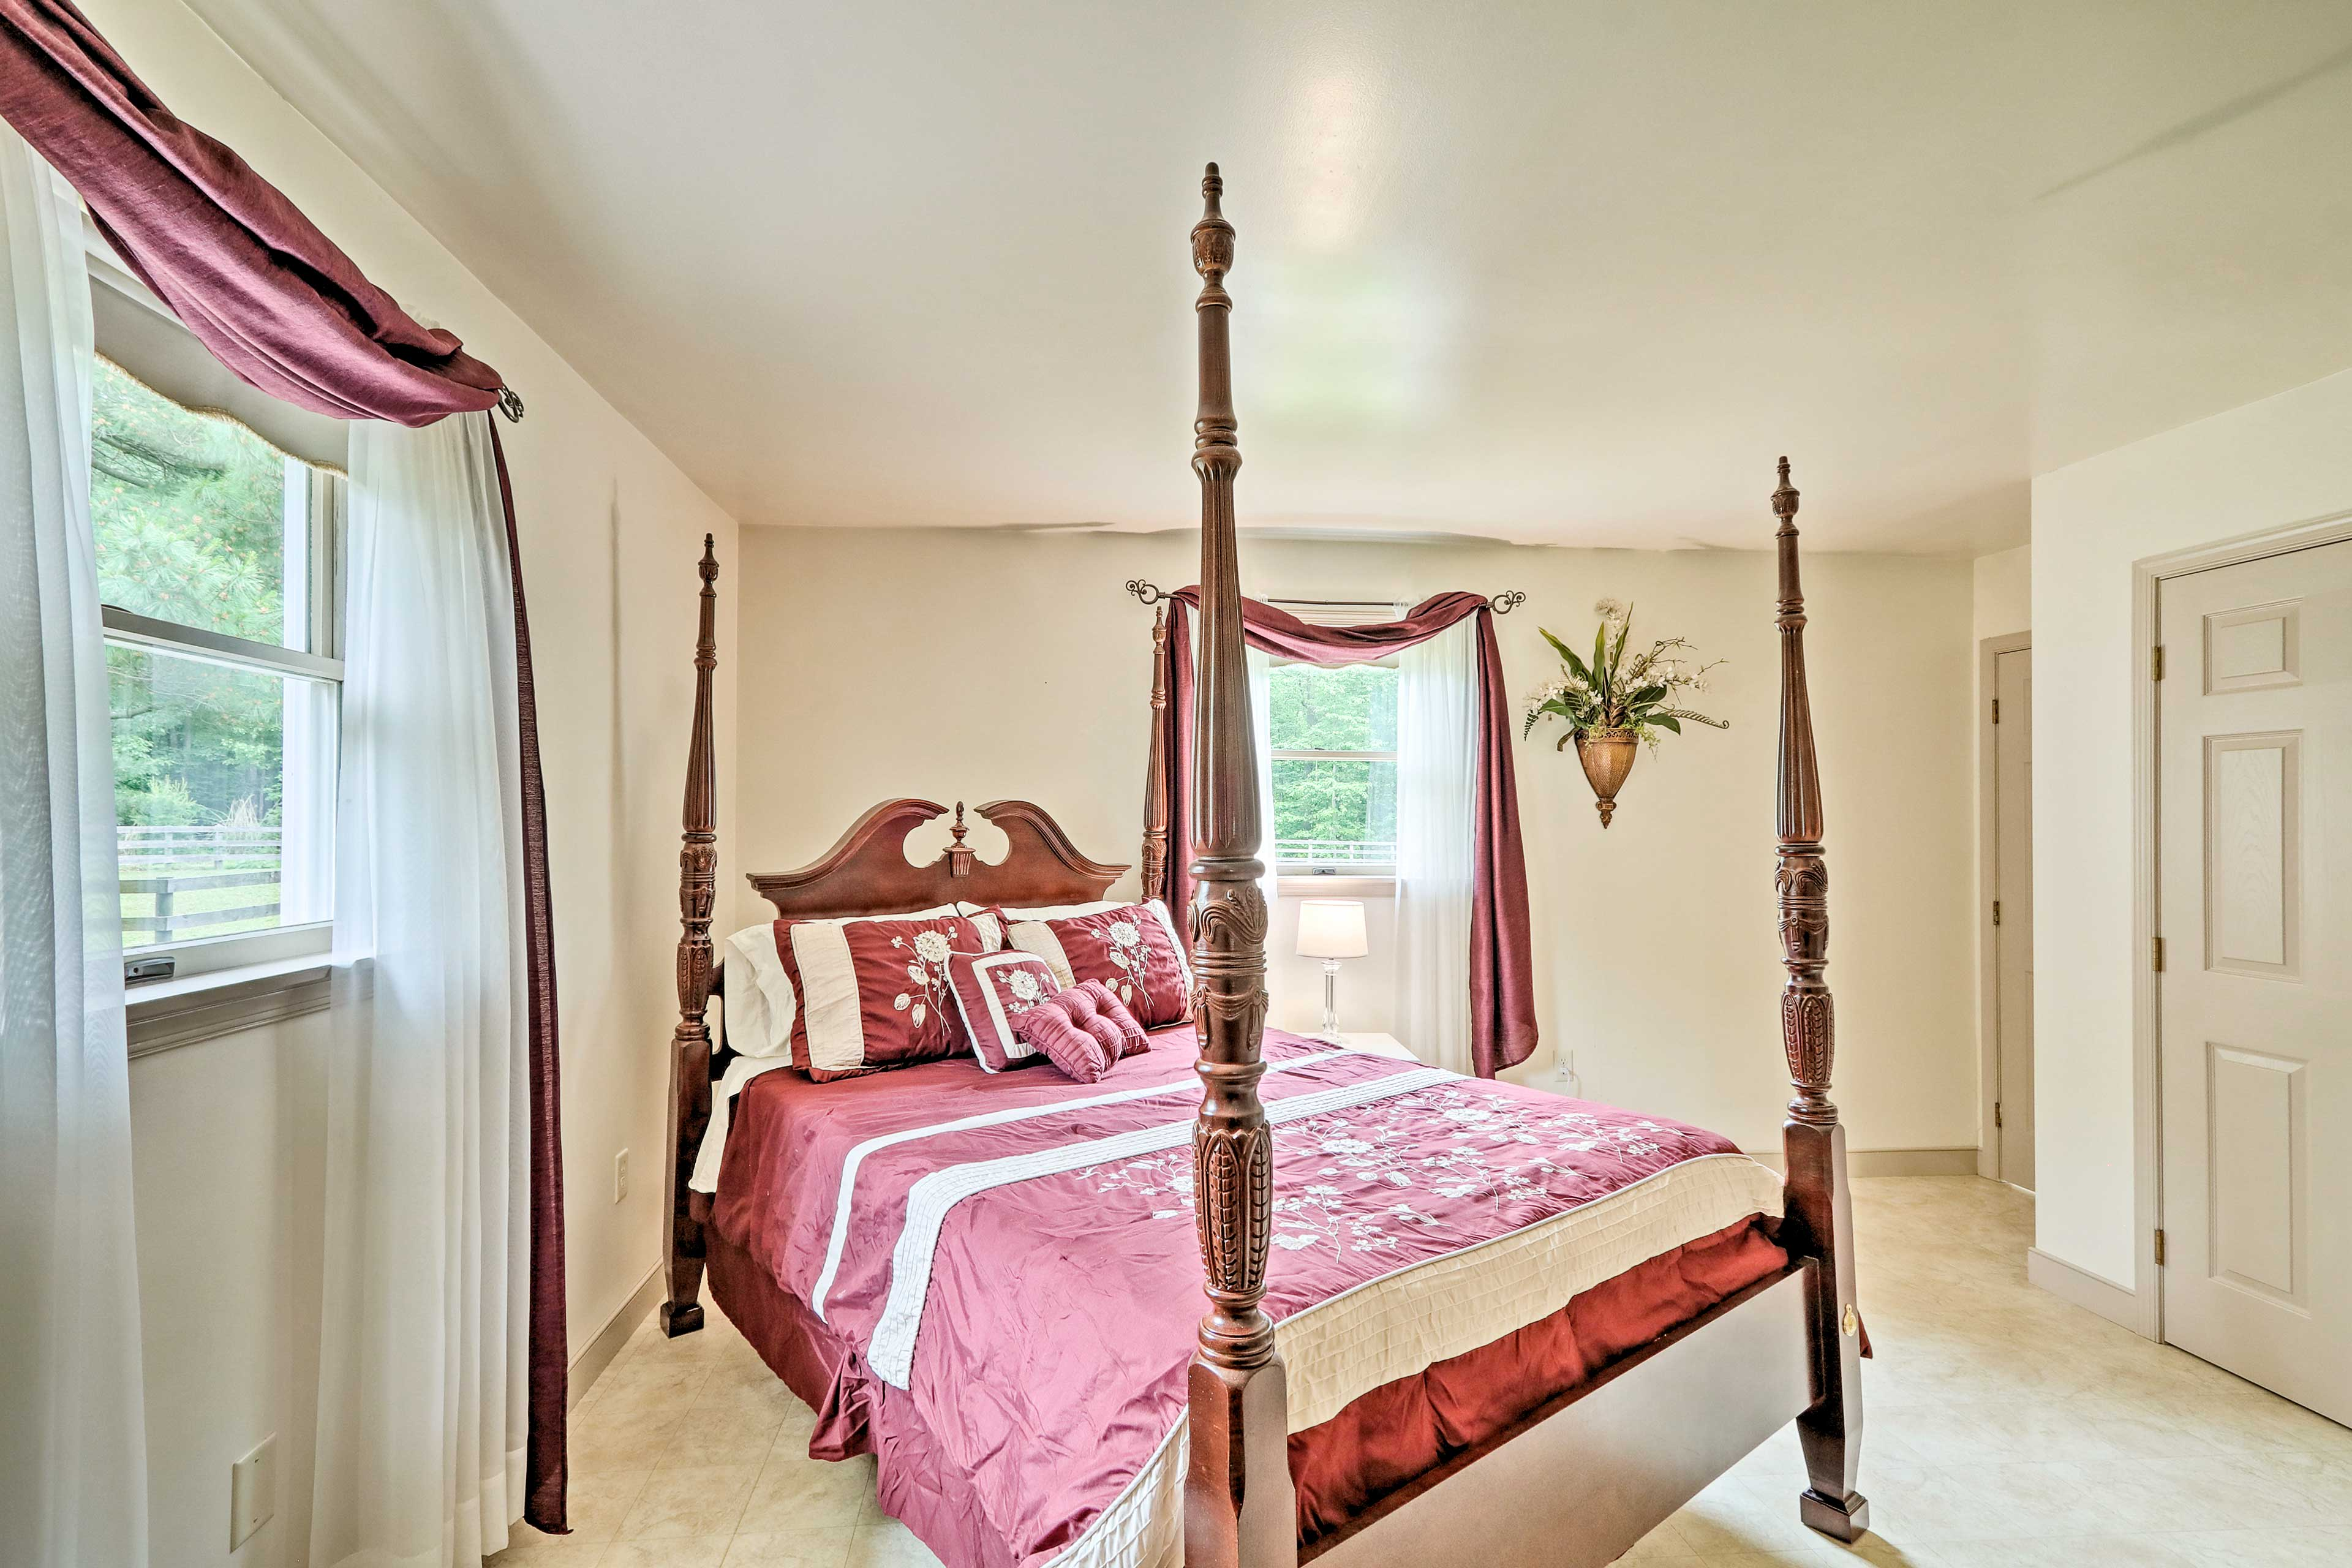 Claim this grand 4-poster queen bed as your own!